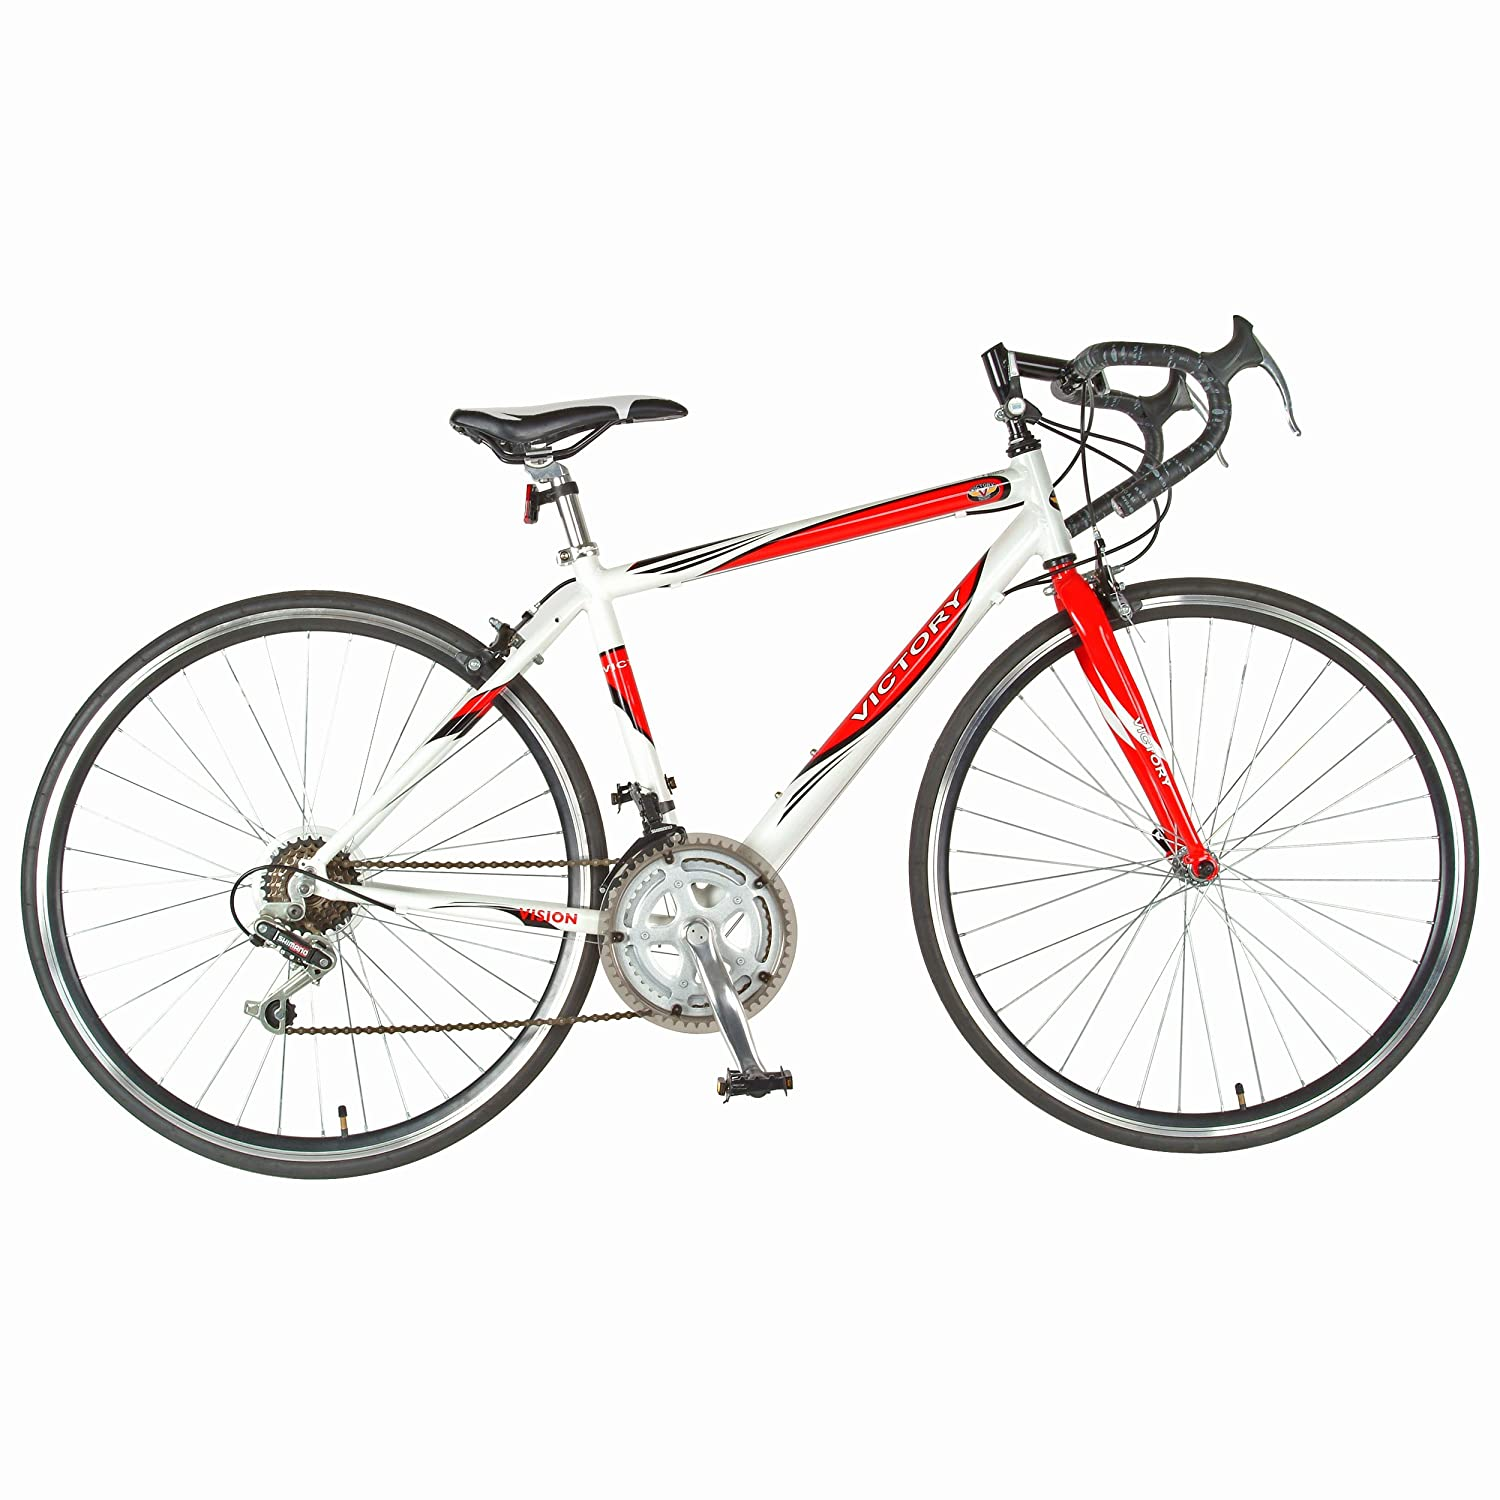 Amazon.com : Victory Vision Bike (Red/White, 700C X 20-Inch) : Road ...